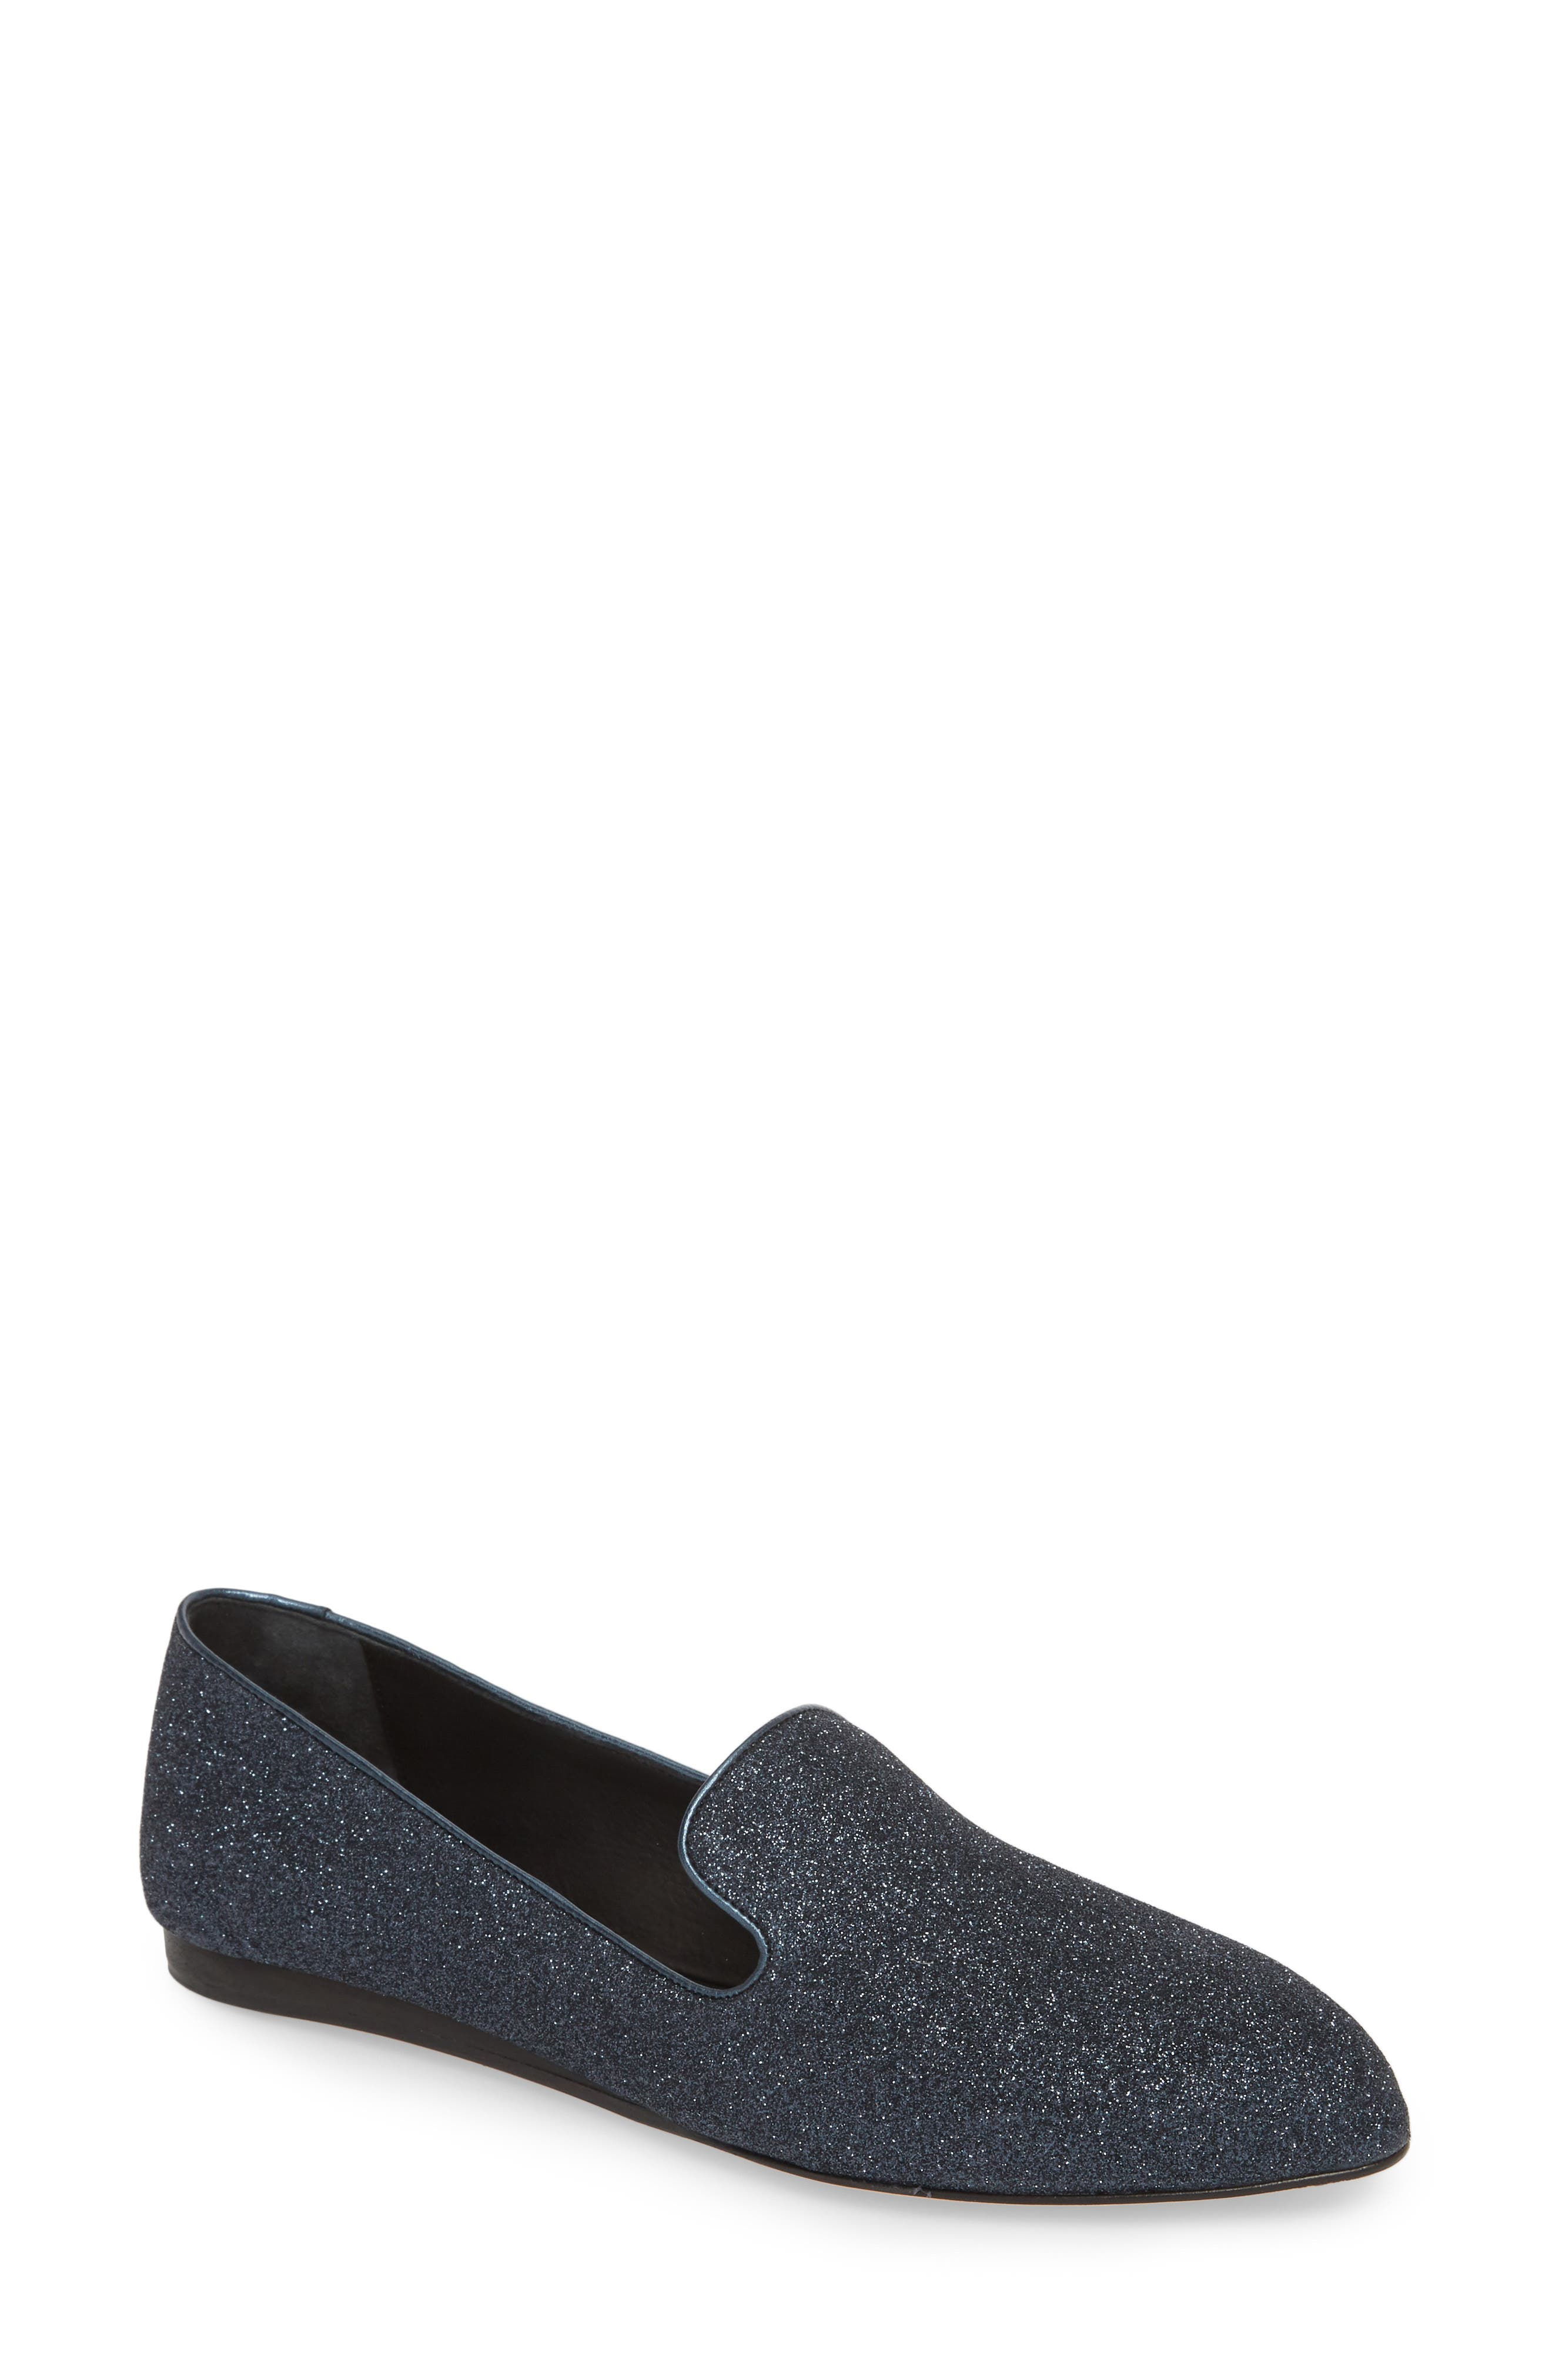 Griffin Pointy Toe Loafer,                         Main,                         color, Midnight